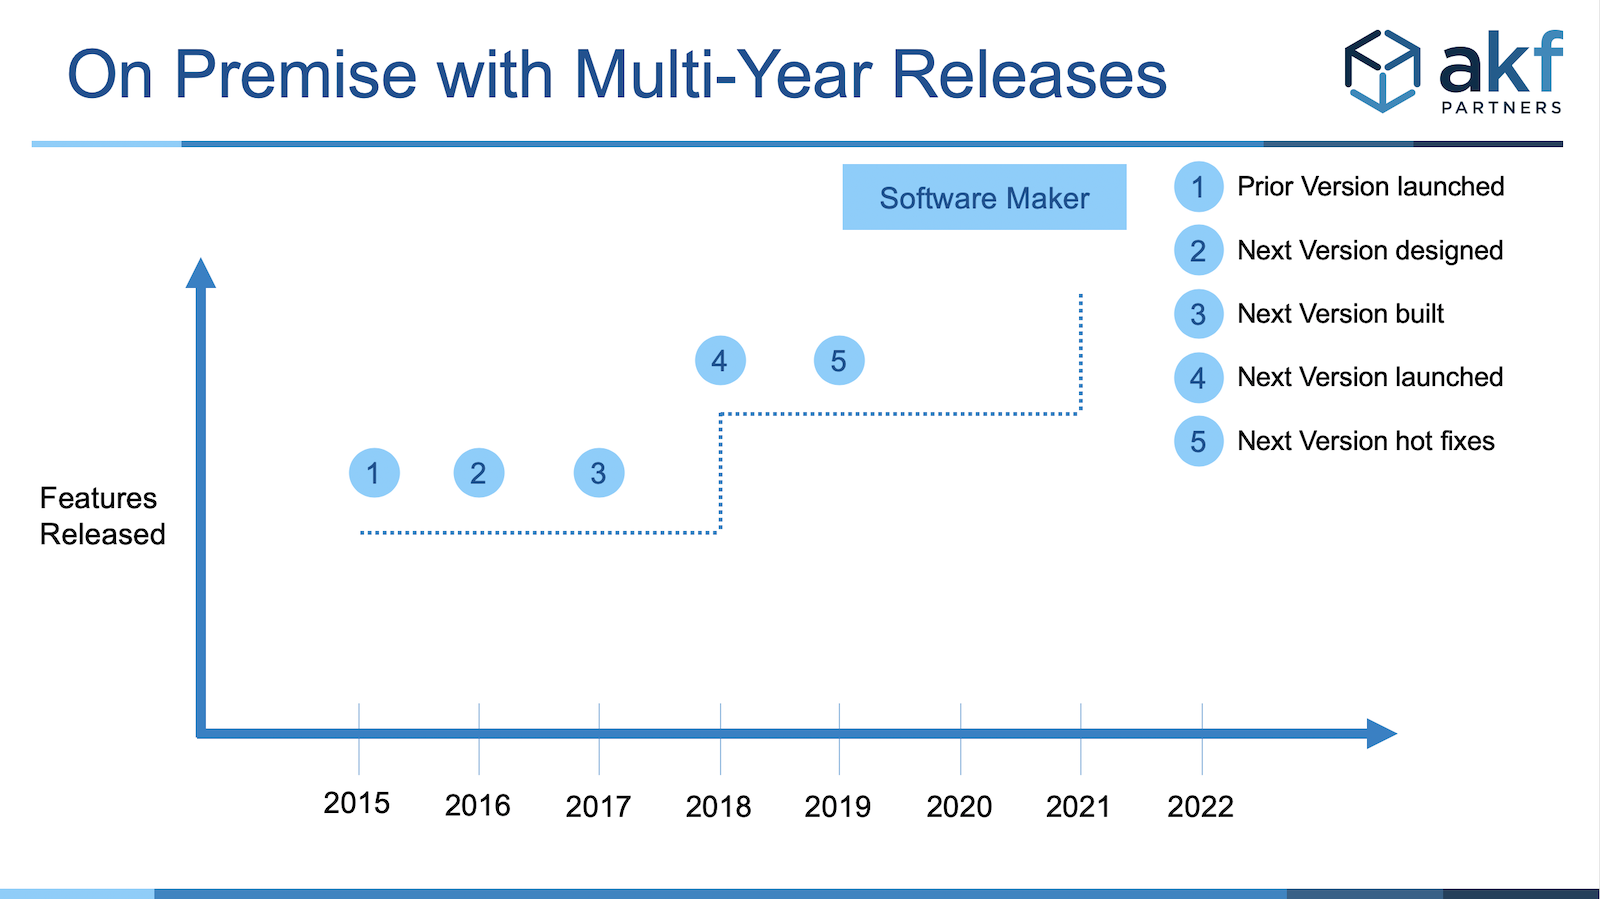 software release cycle milestones